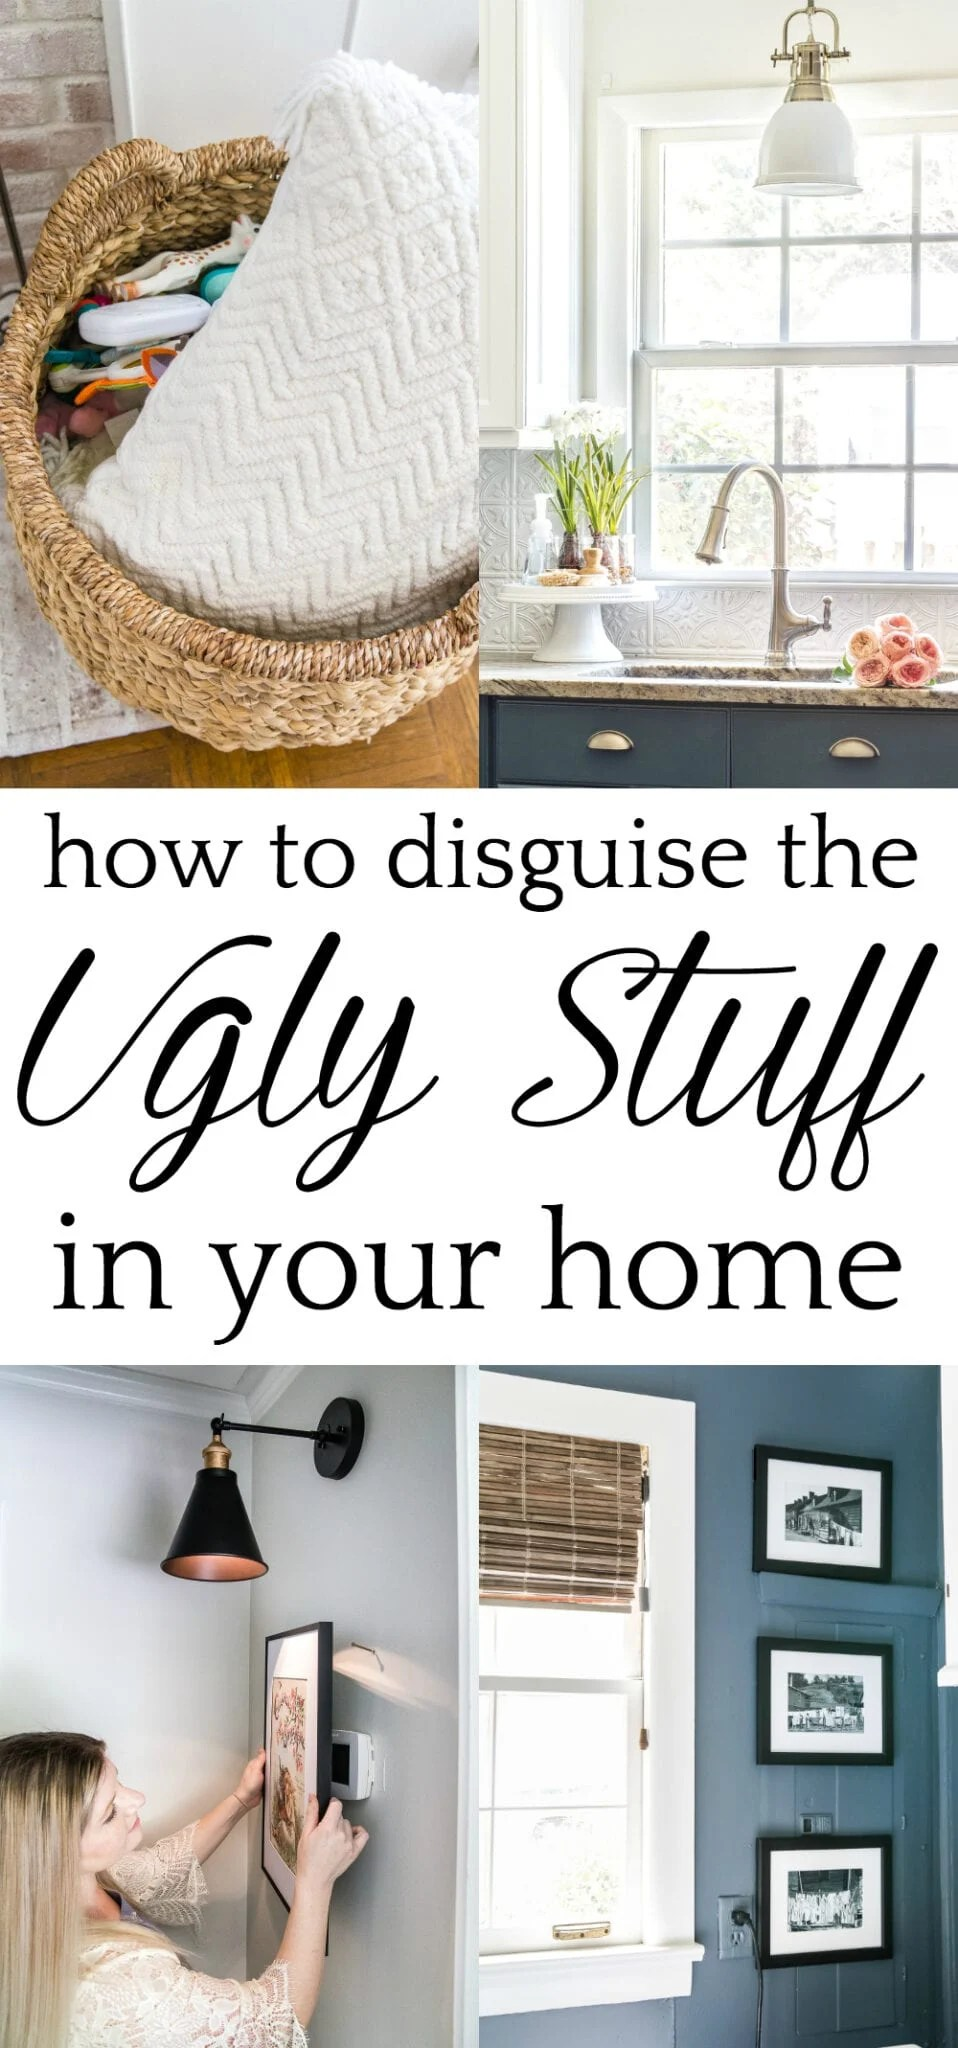 How to Disguise the Ugly Stuff in Your Home | 14 ways to decorate and disguise little eyesores in your home to make the every day pretty and functional. #decorating #disguiseugly